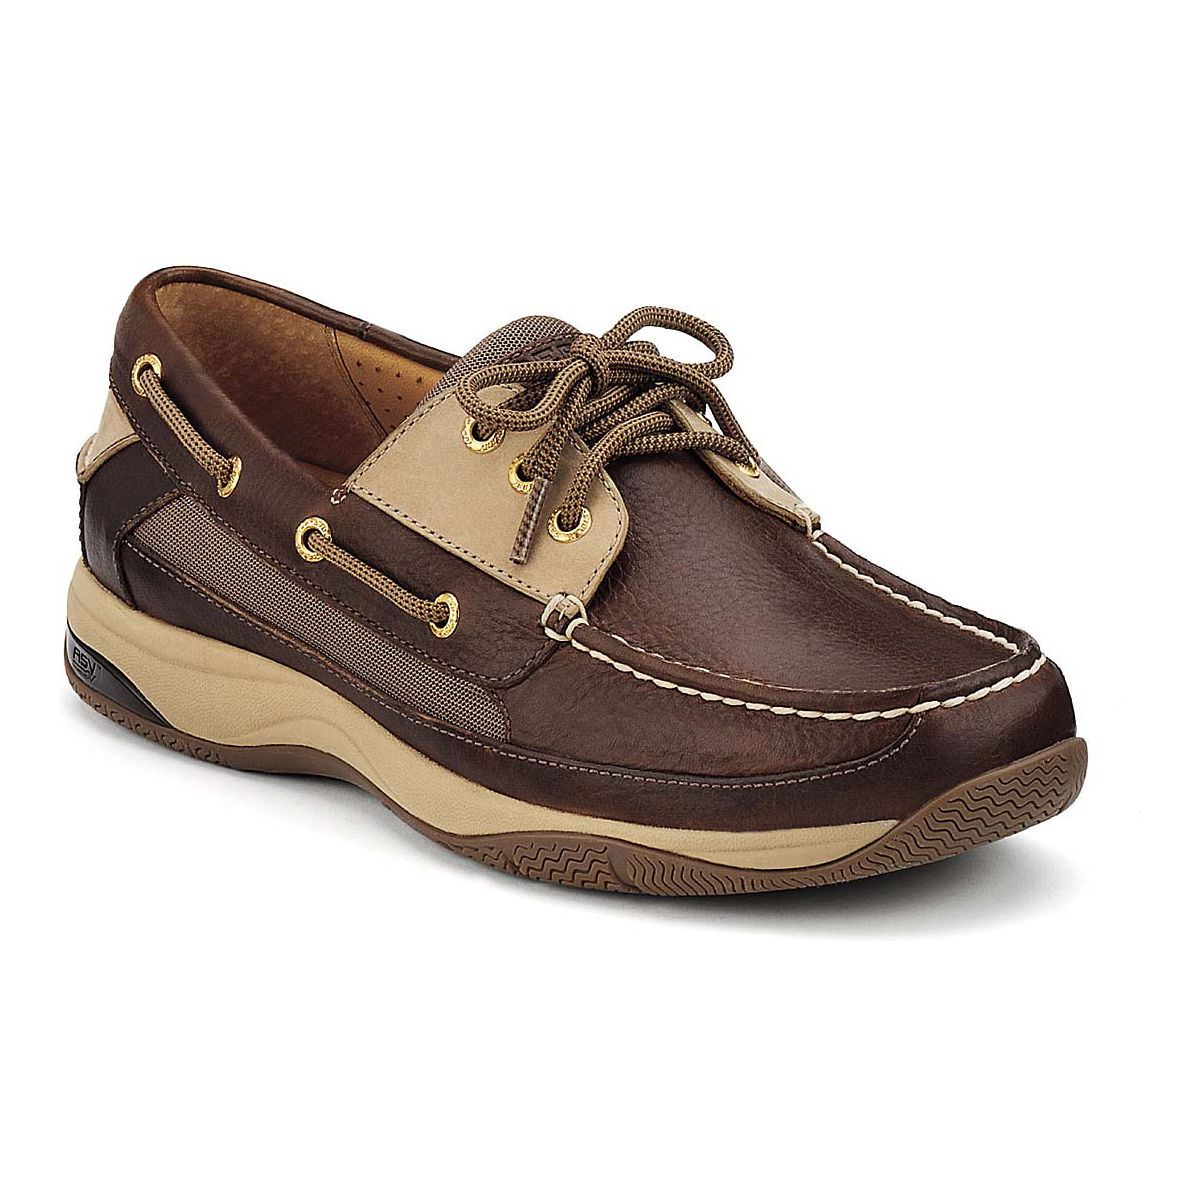 Sperry Men's Gold Cup ASV 2-Eye Boat Shoe Cognac Leather ... |Sperry Gold